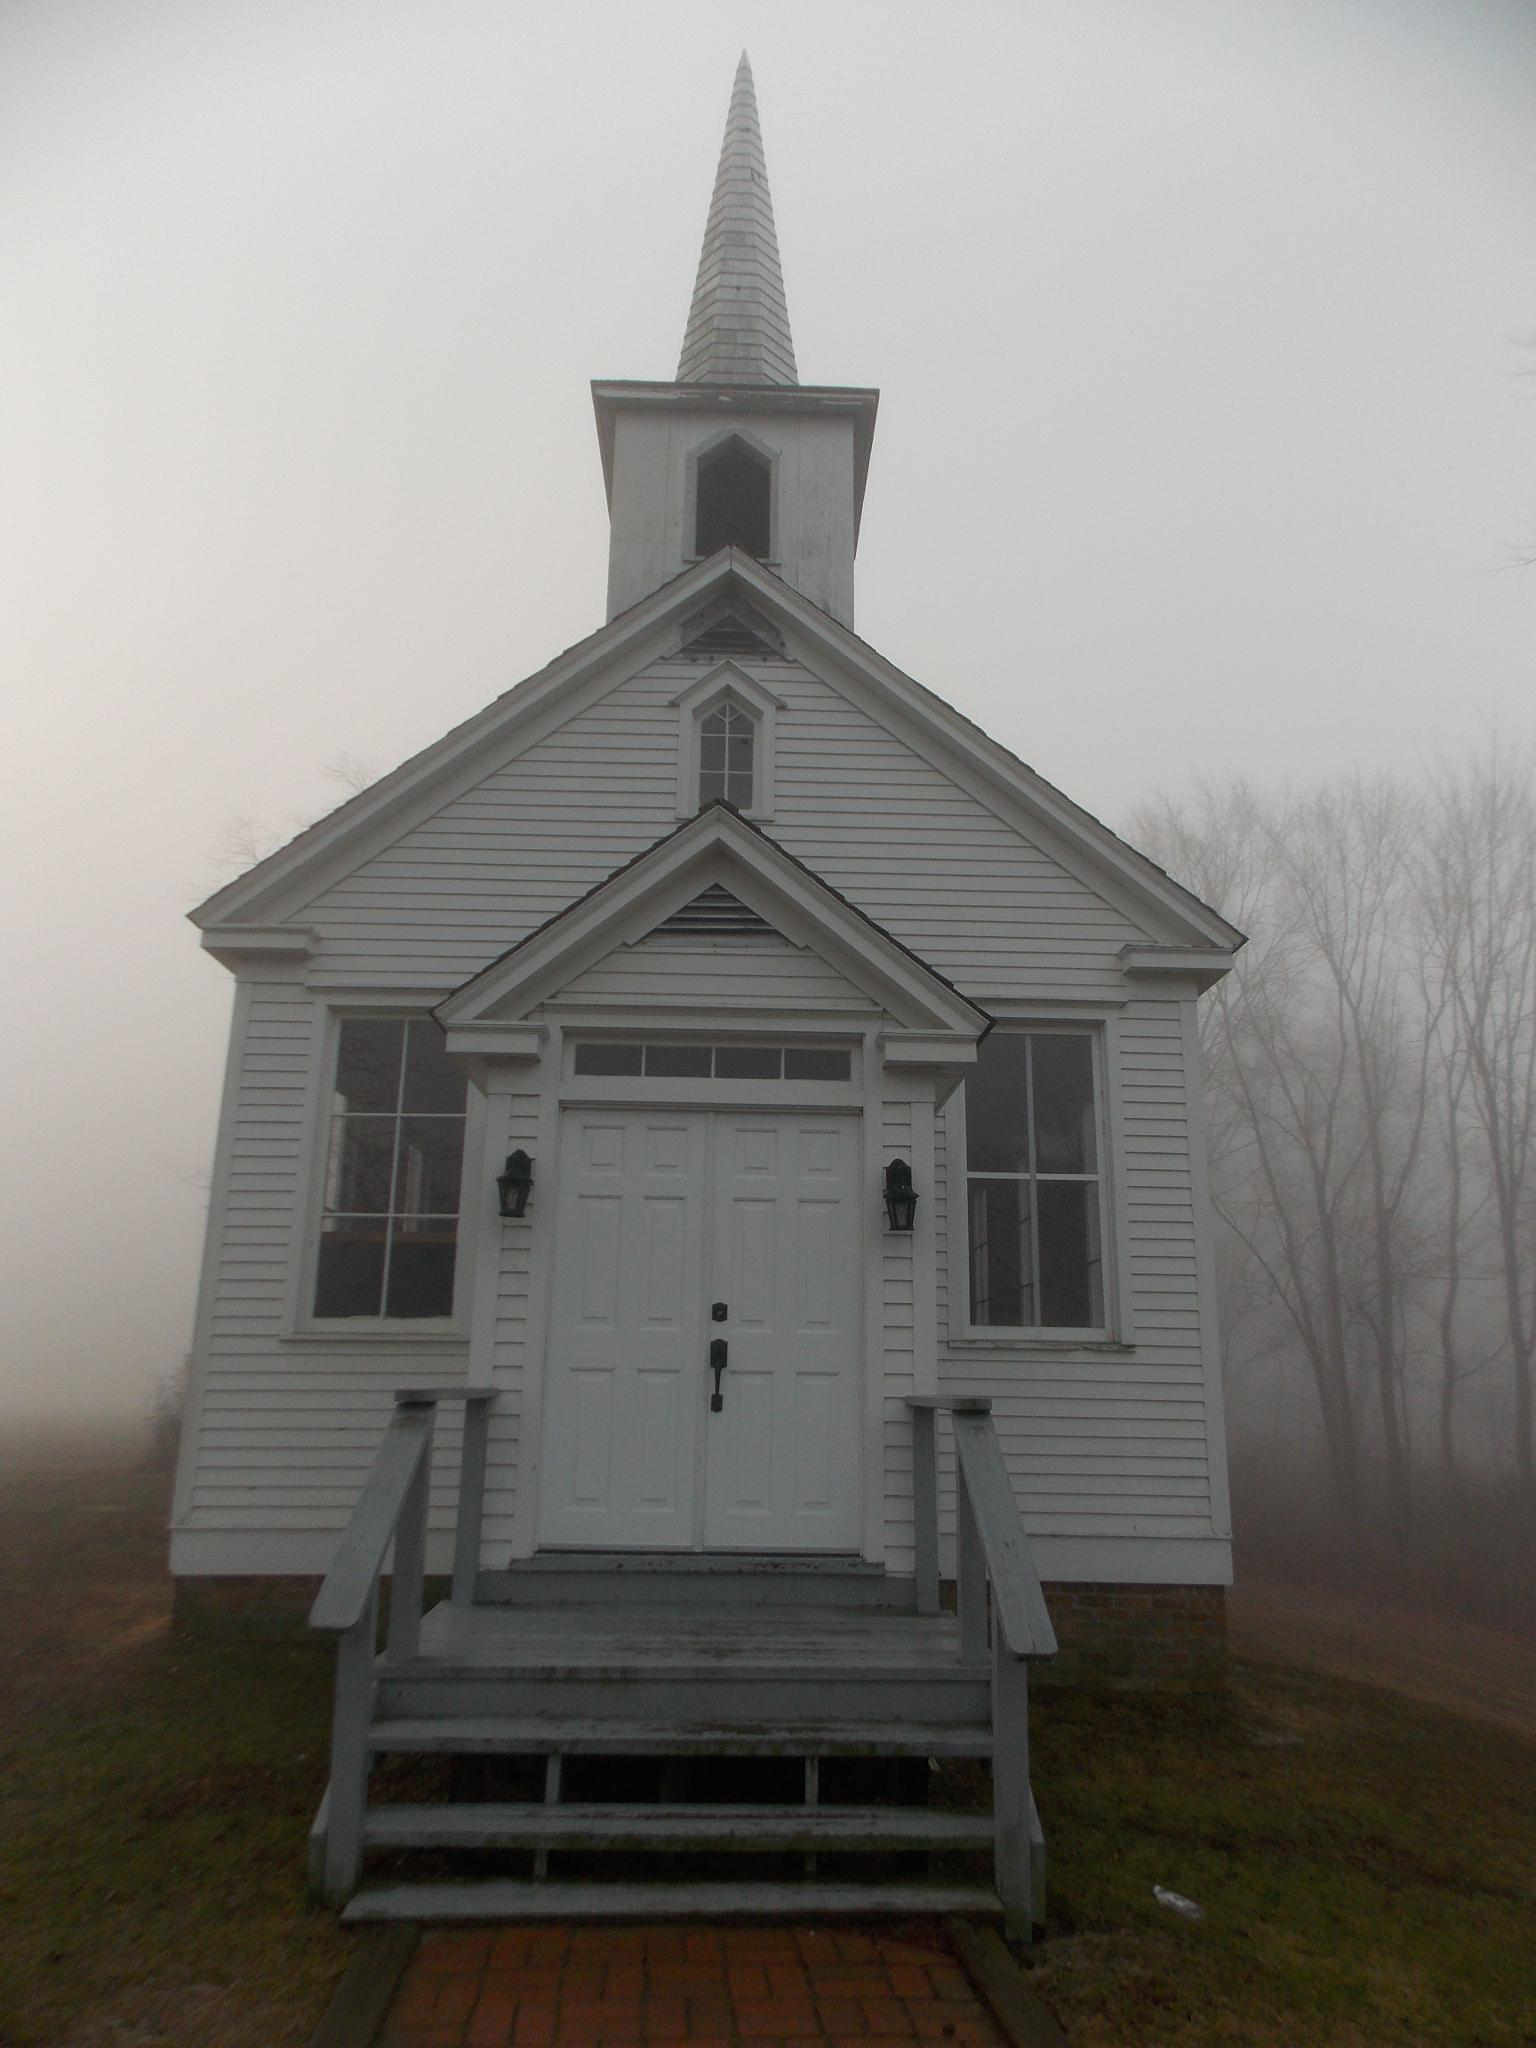 Old Church in the Mist by vicky.hiner-velez